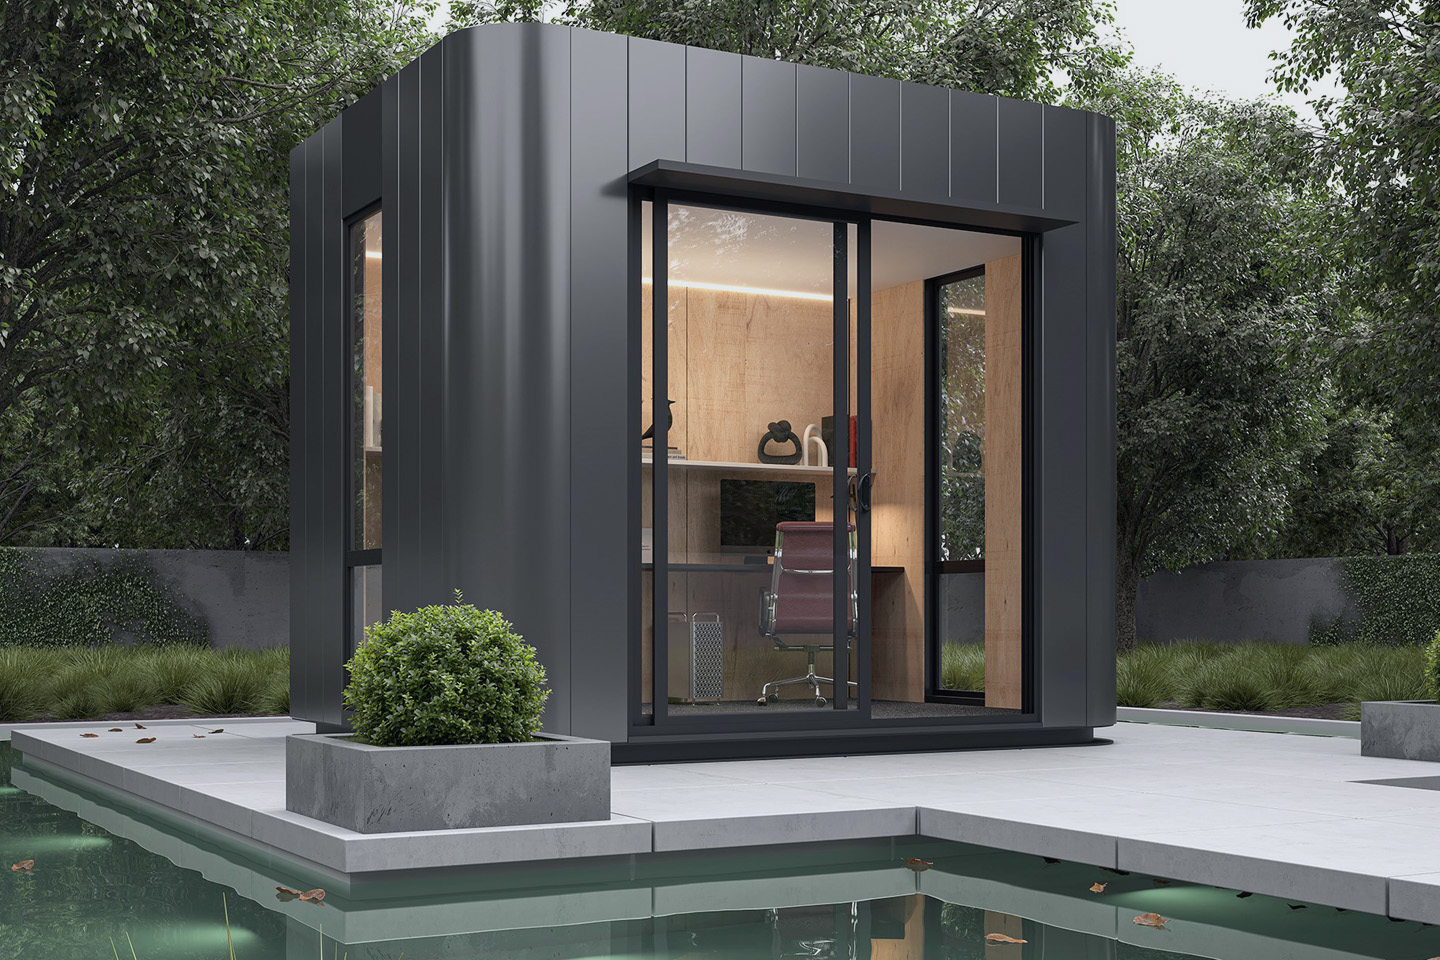 Perfect for a kid's retreat, home office or yoga studio, the backyard pod could be the ideal solution for your family. Image courtesy of Harwyn.